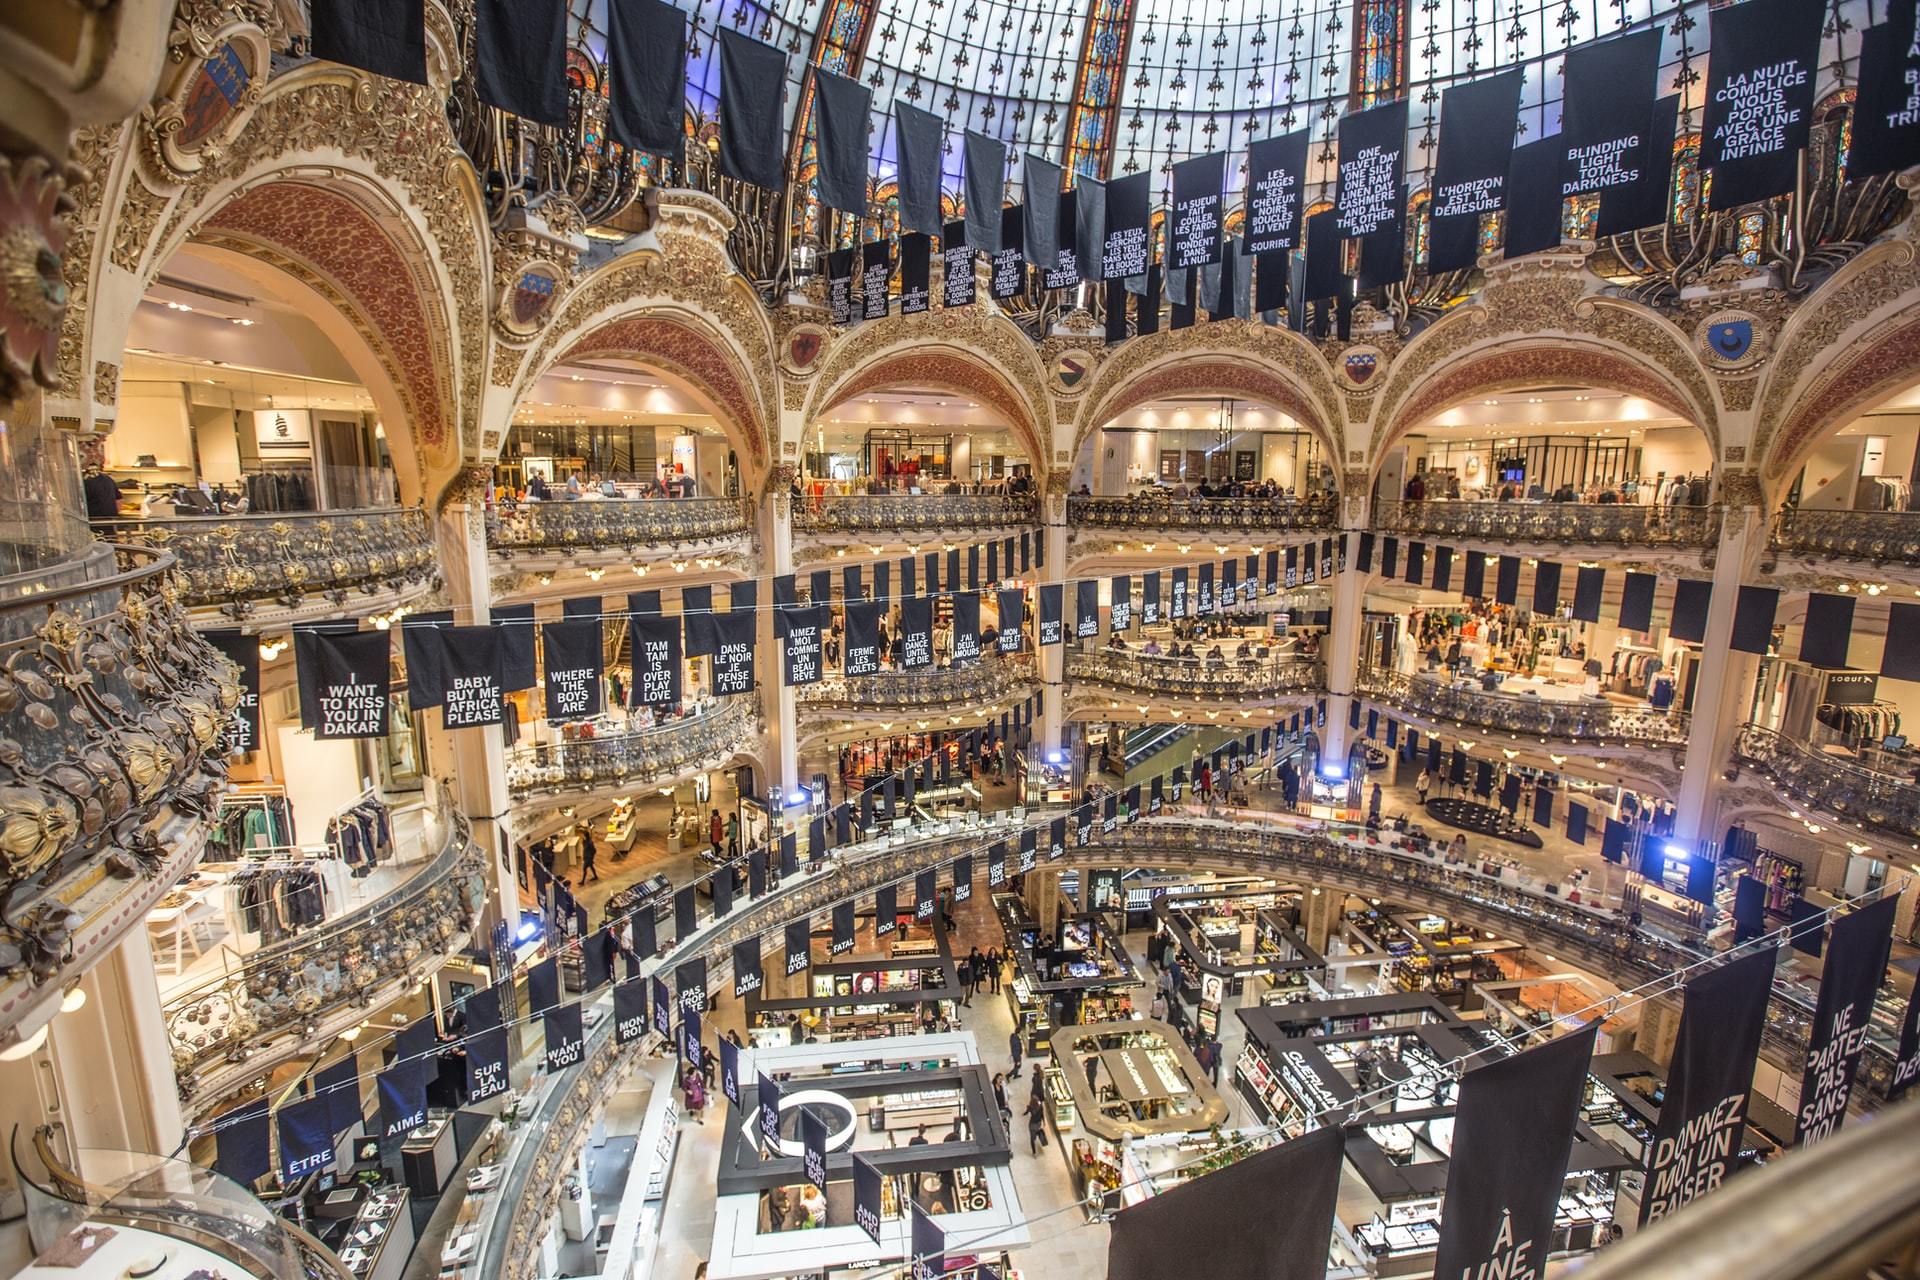 Interior of Galeries Lafayette shown floor by floor